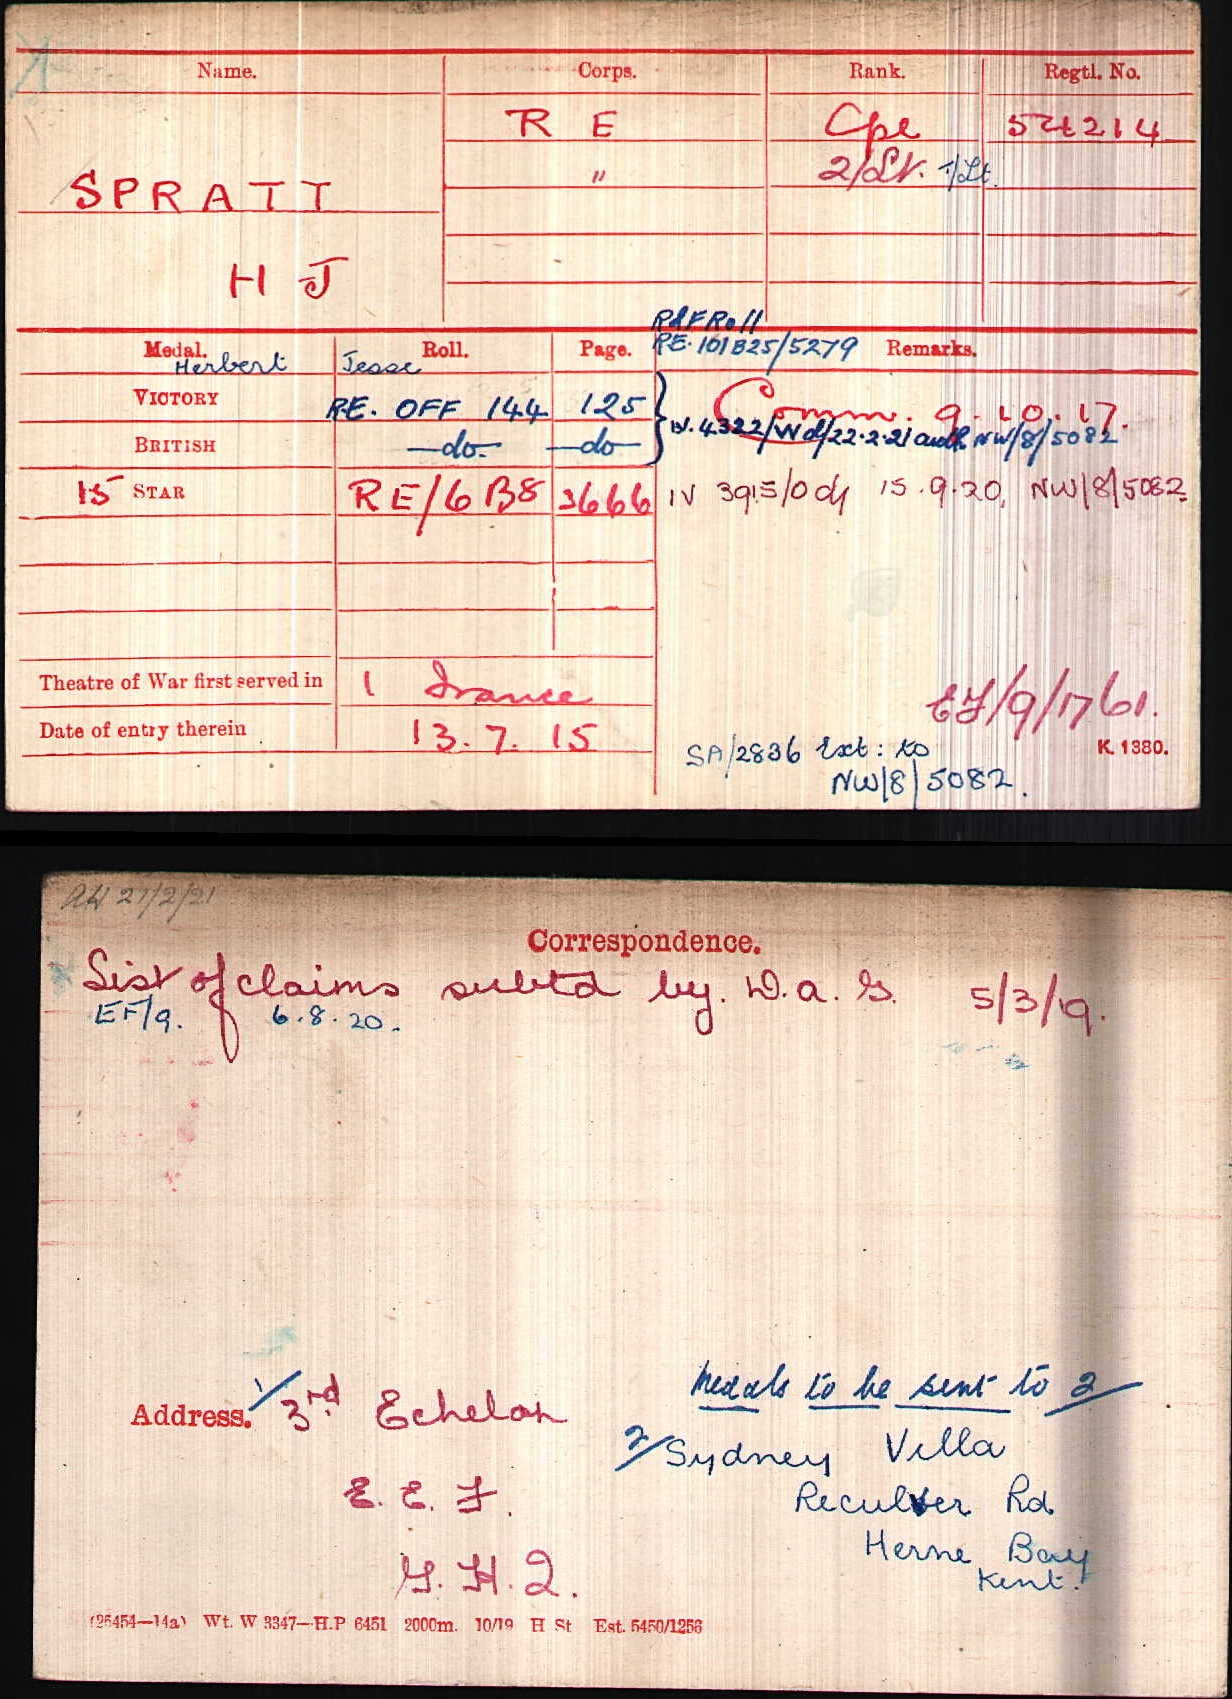 Herbert Spratt - WW1 military record